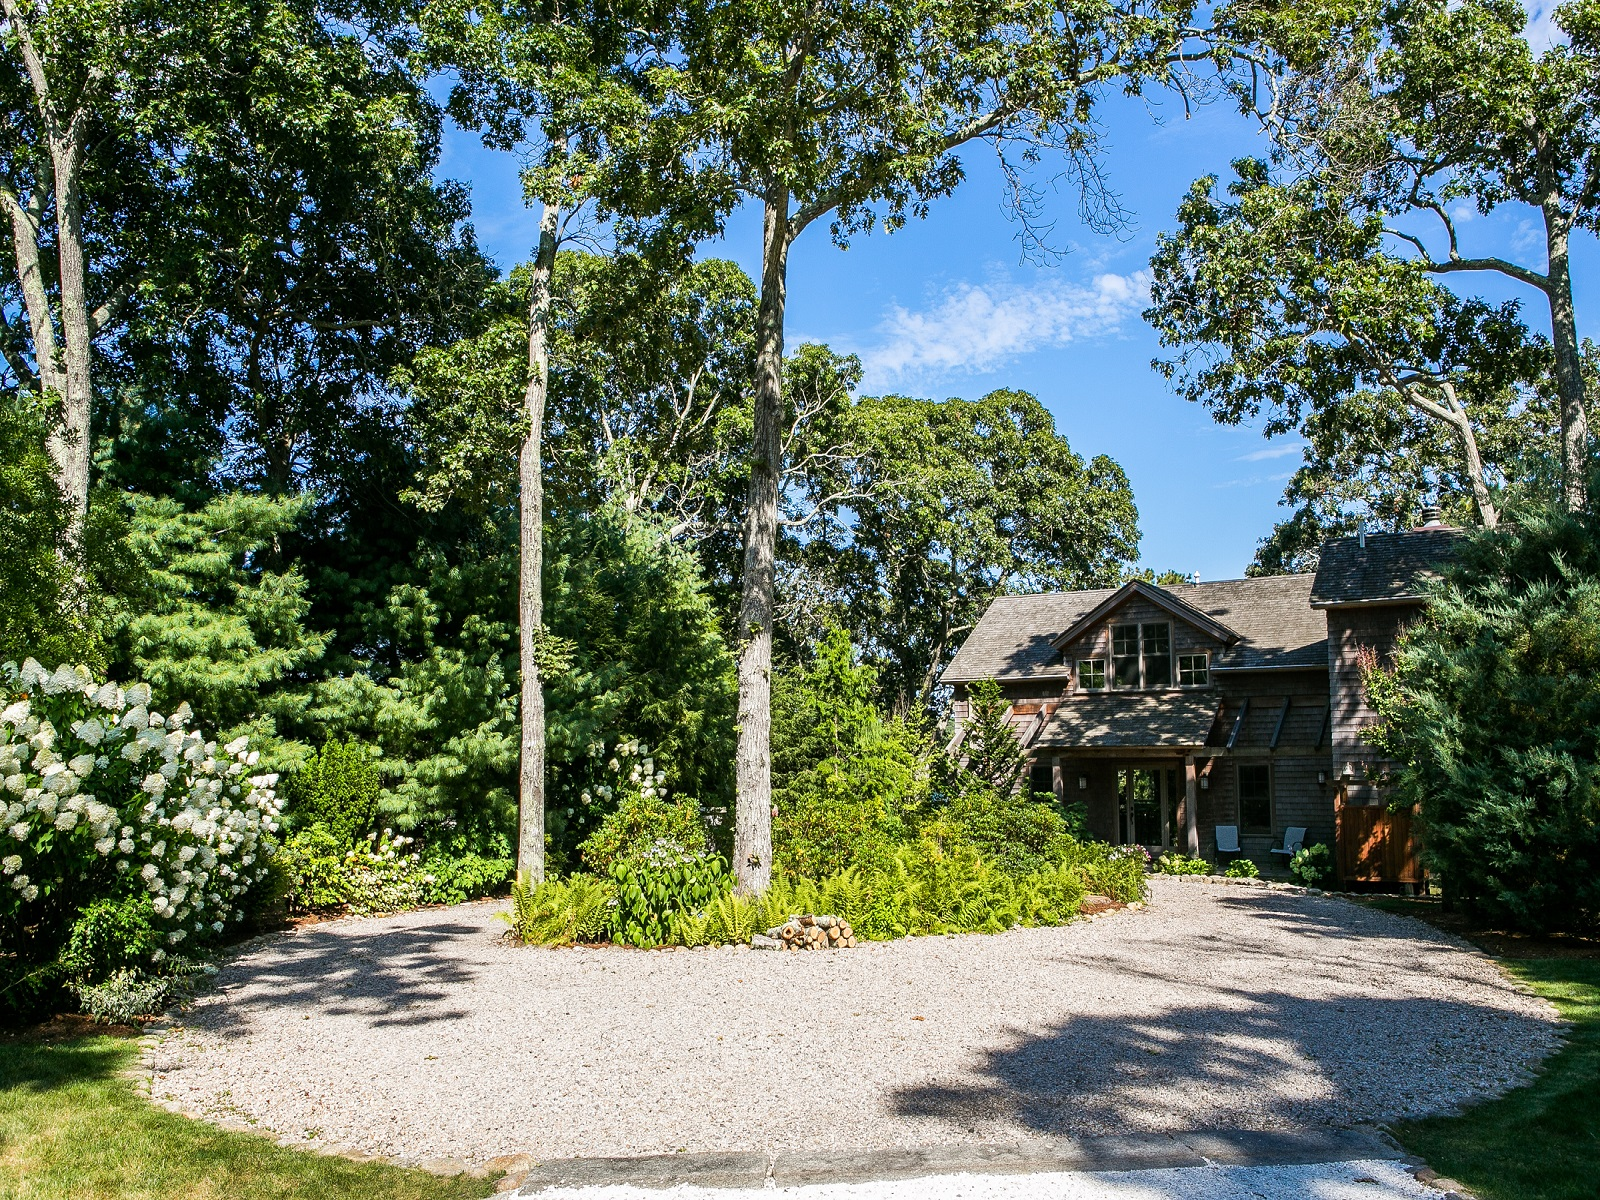 Single Family Home for Sale at Waterfront home with dock on the Lagoon 20 Sunnyside Avenue Vineyard Haven, Massachusetts 02568 United States